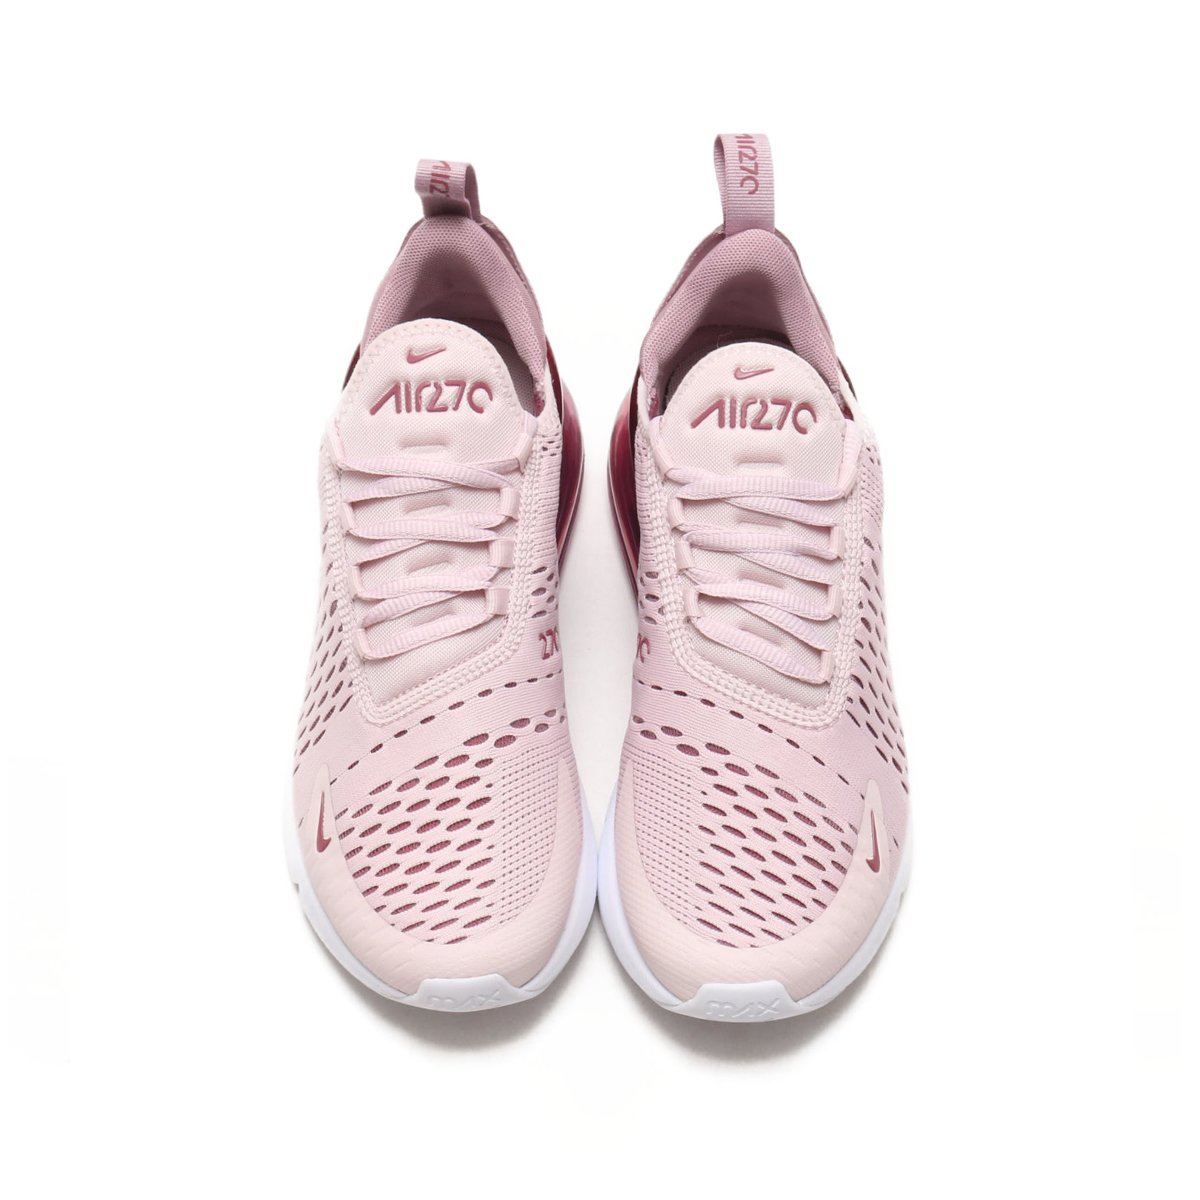 NIKE W AIR MAX 270 (Nike women Air Max 270) (BARELY ROSE VINTAGE  WINE-ELEMENTAL ROSE) 18SU-S 36c57affb8